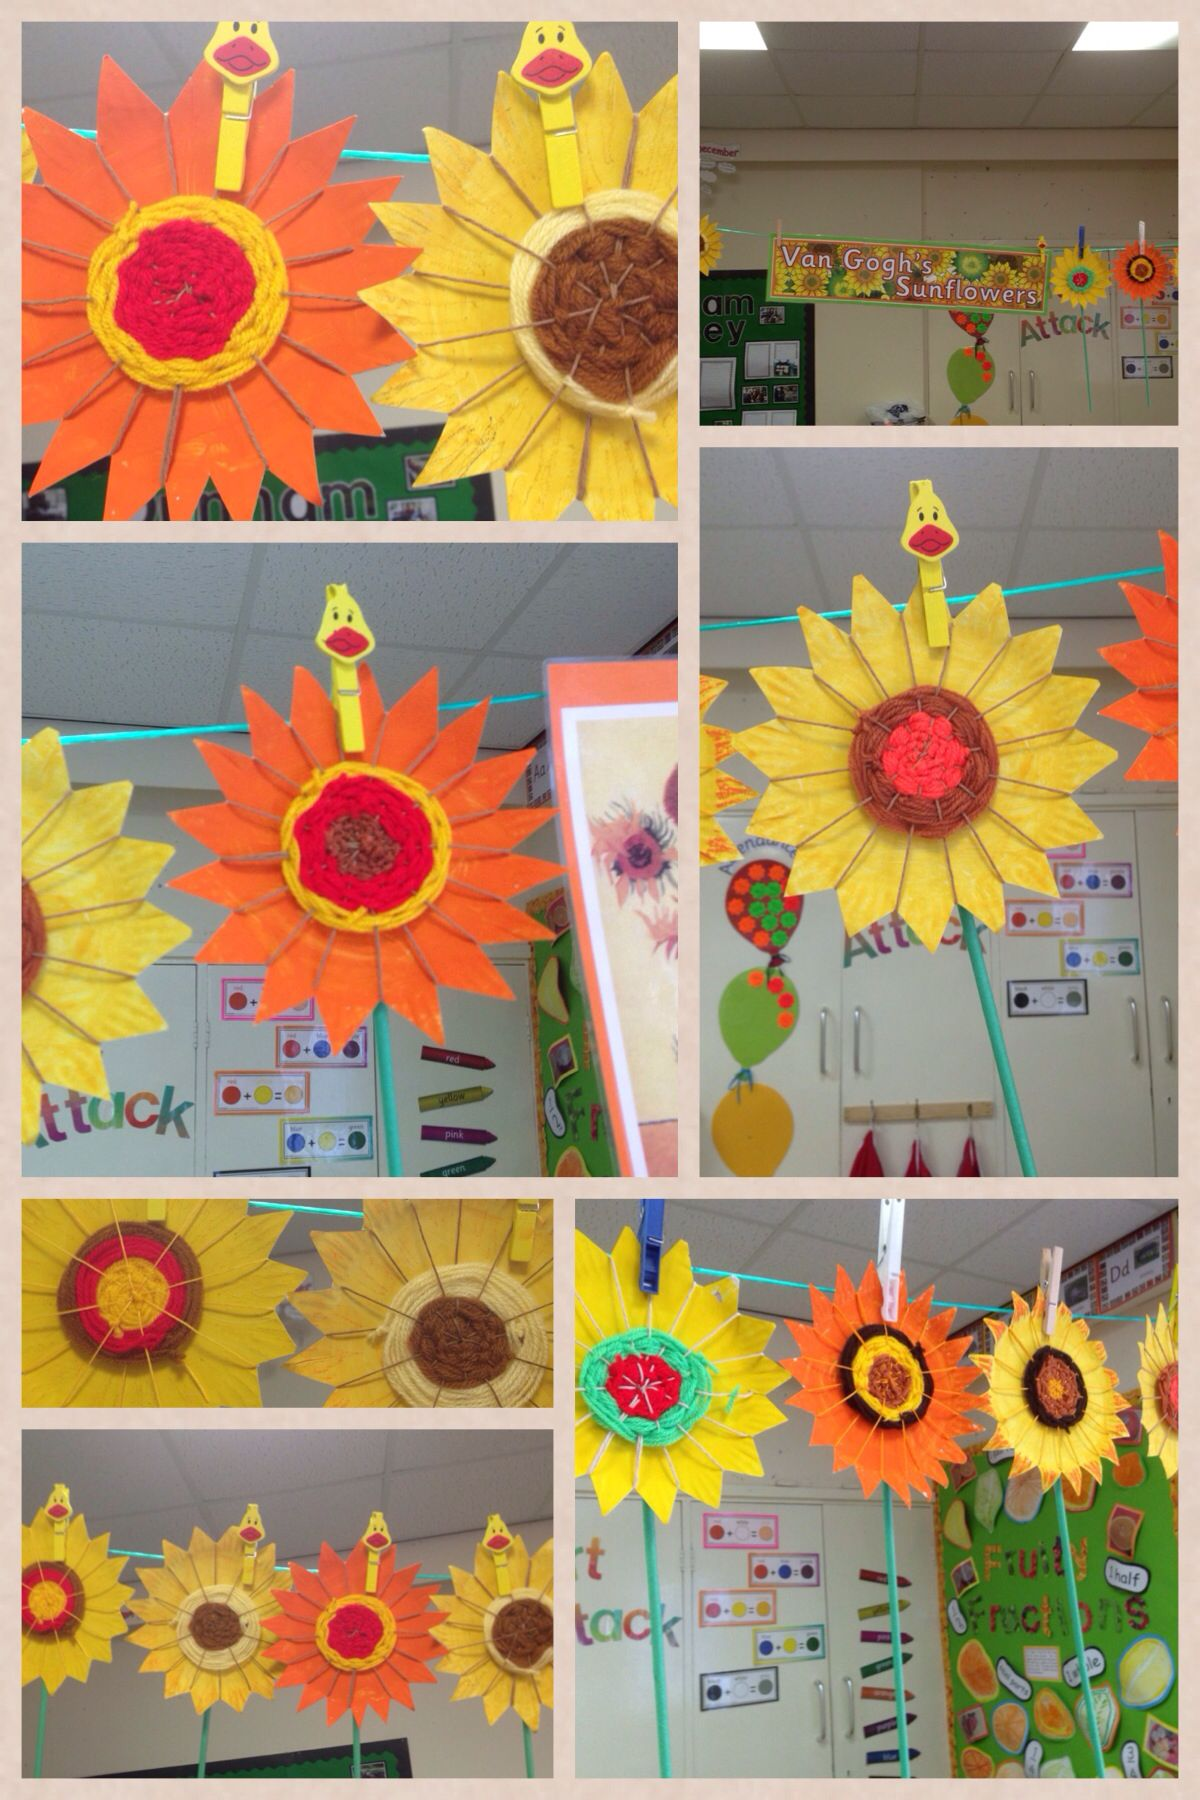 Van Gogh sunflowers. Paper plate weaving by year 1.  sc 1 st  Pinterest & Van Gogh sunflowers. Paper plate weaving by year 1. | Kidlets ...